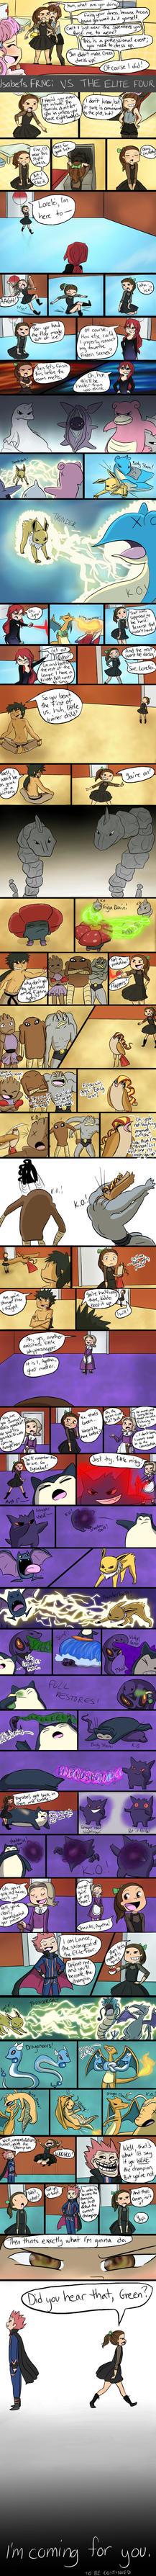 Isabel's FRNC: Vs The Elite Four by MeowMix72